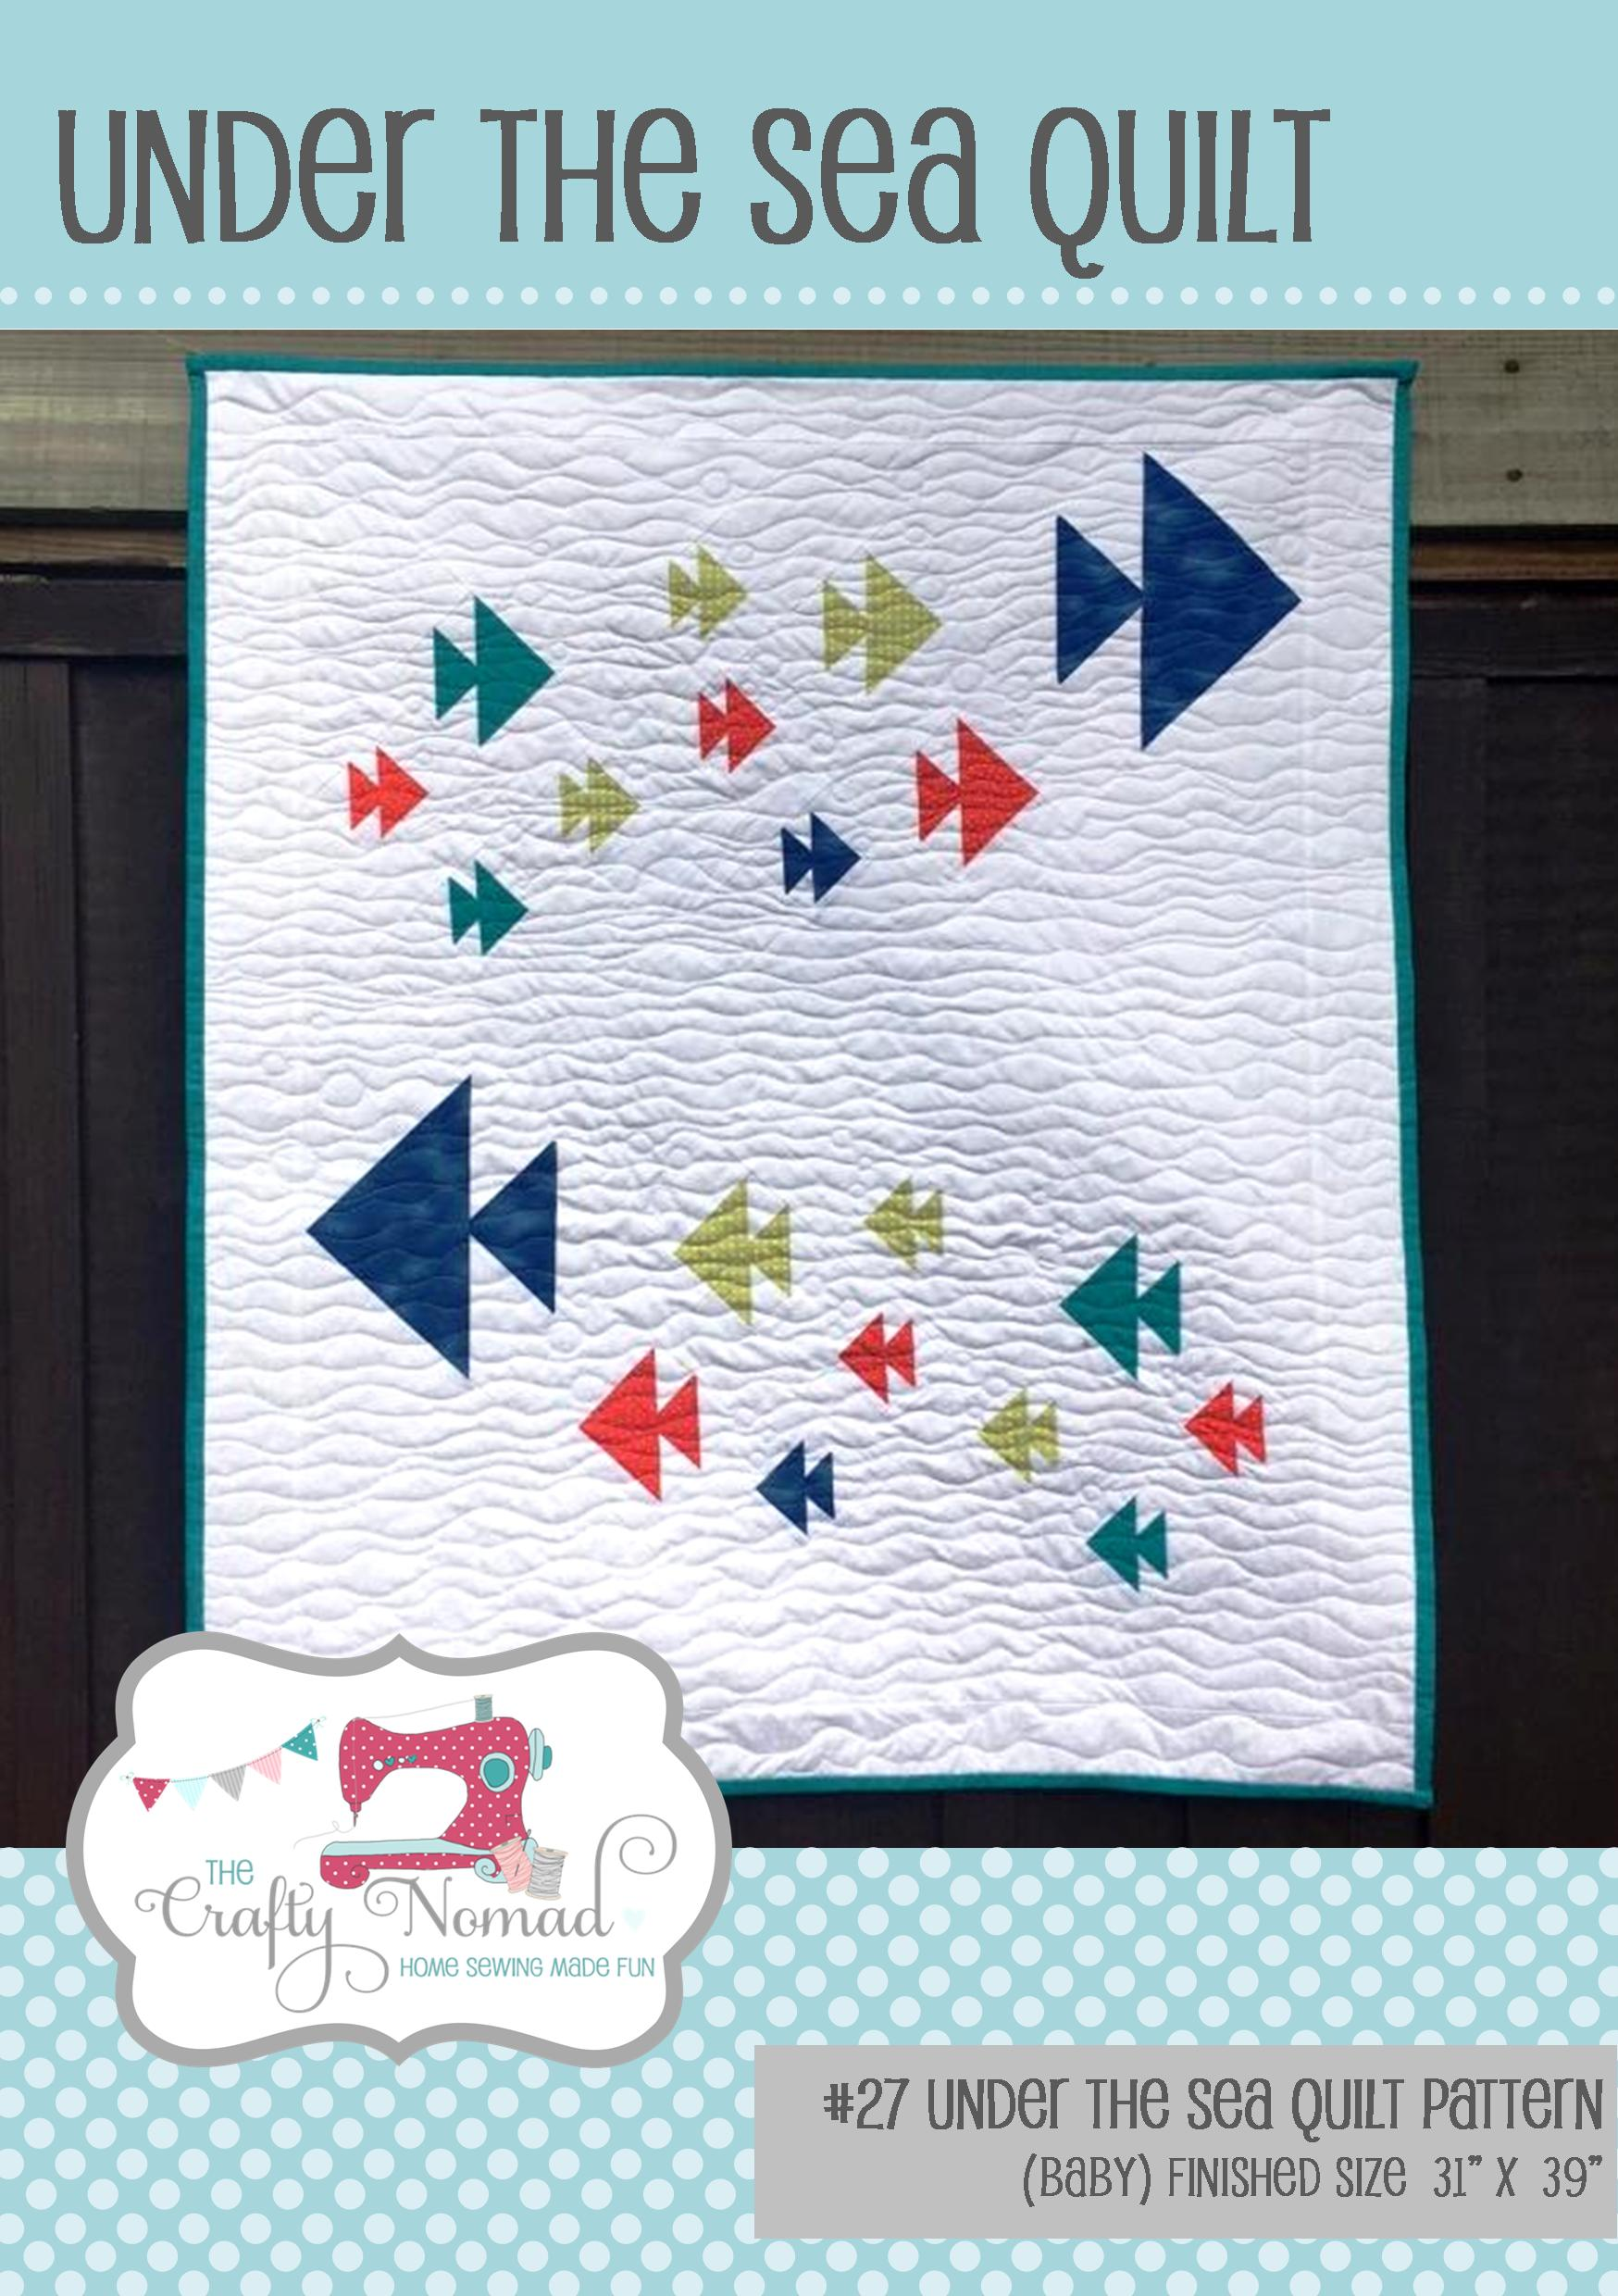 Under the Sea Quilt Baby Pattern Front Page The Crafty Nomad.jpg